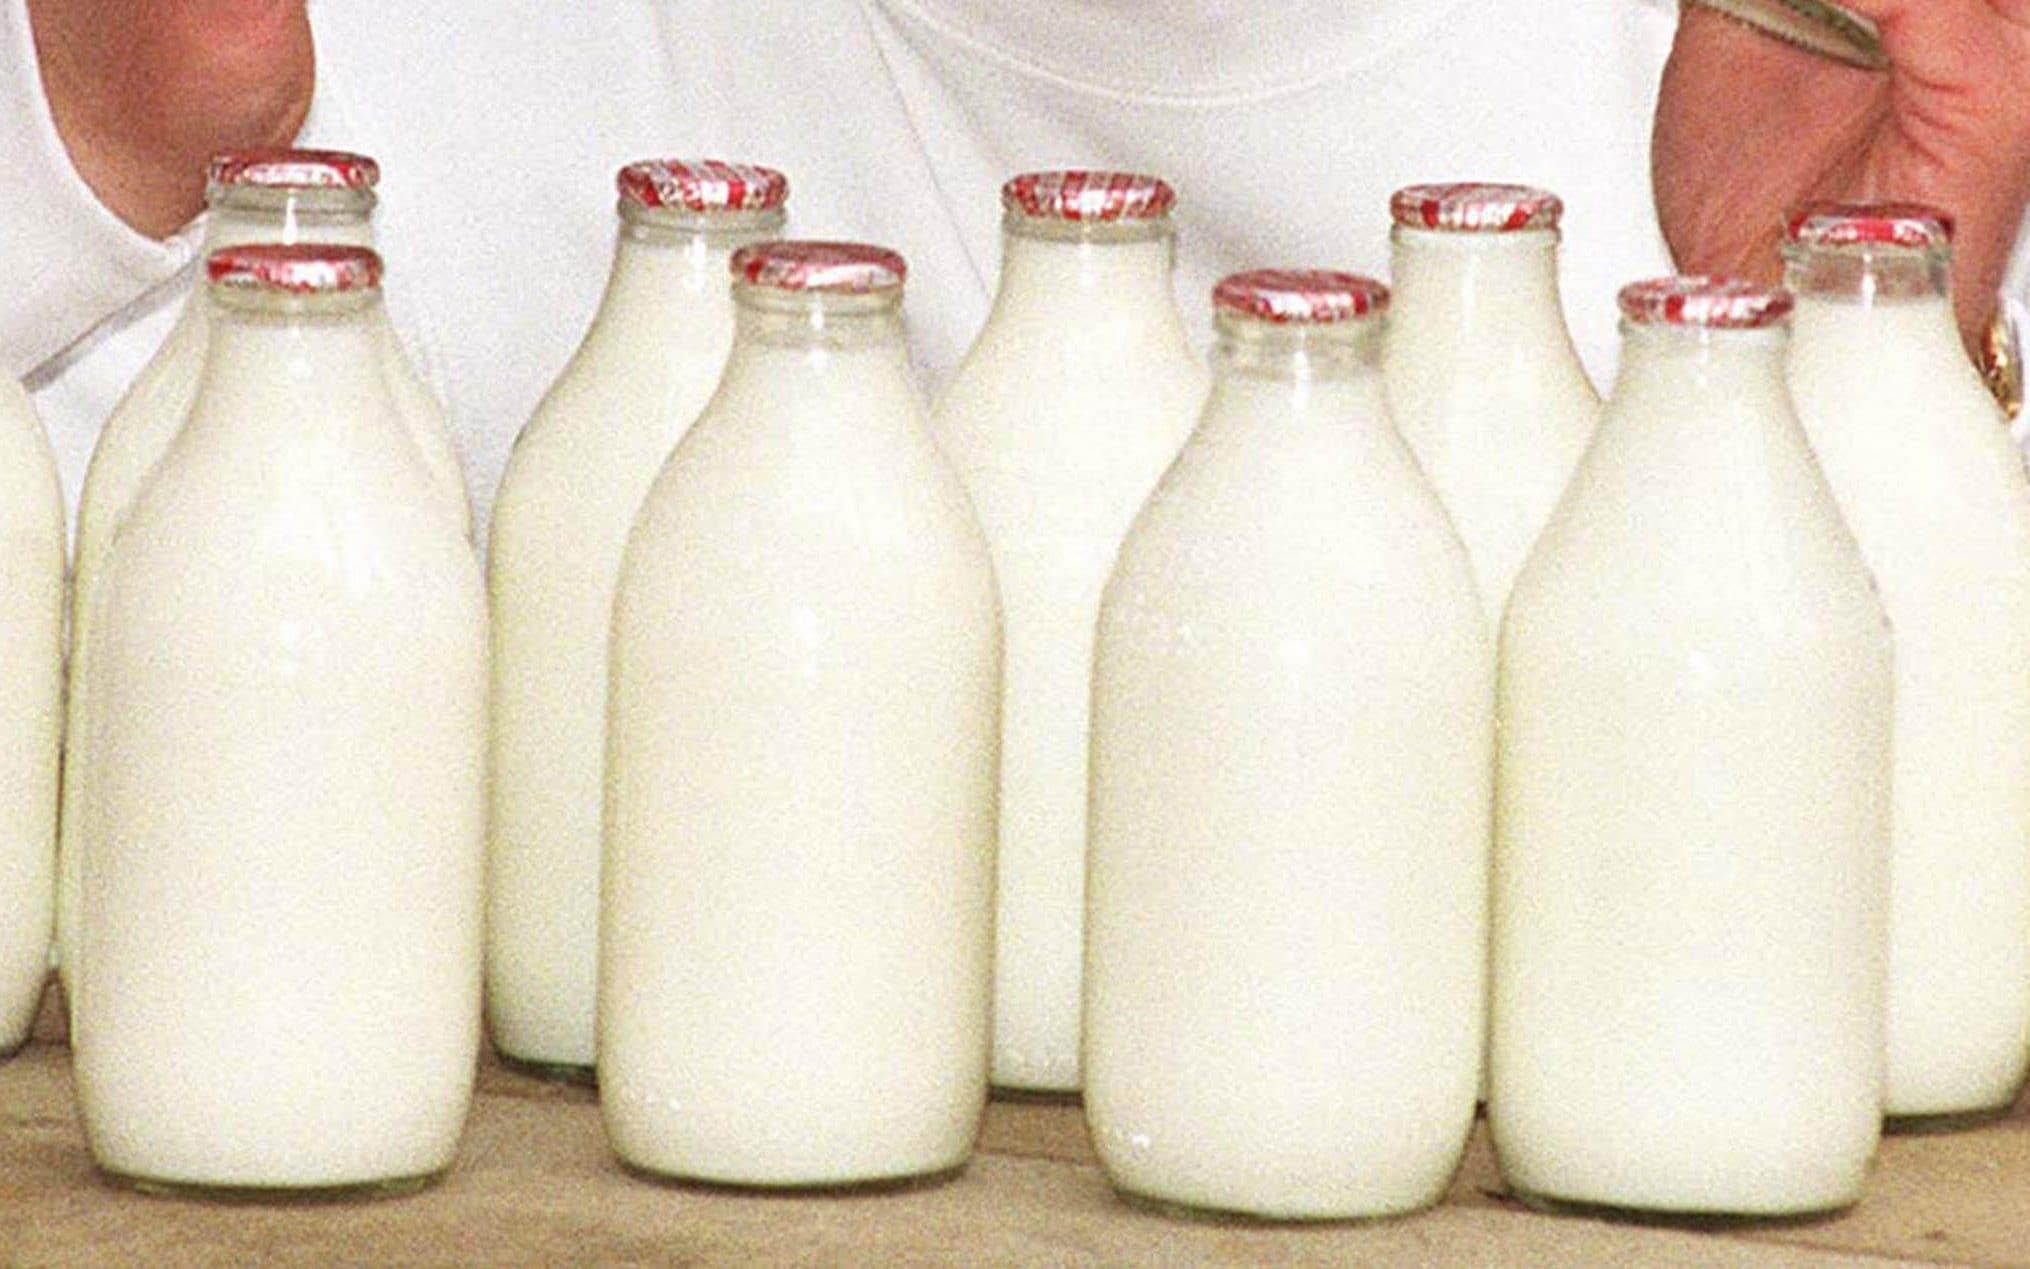 Humane milk is a myth ad relaunched after ASA rejects